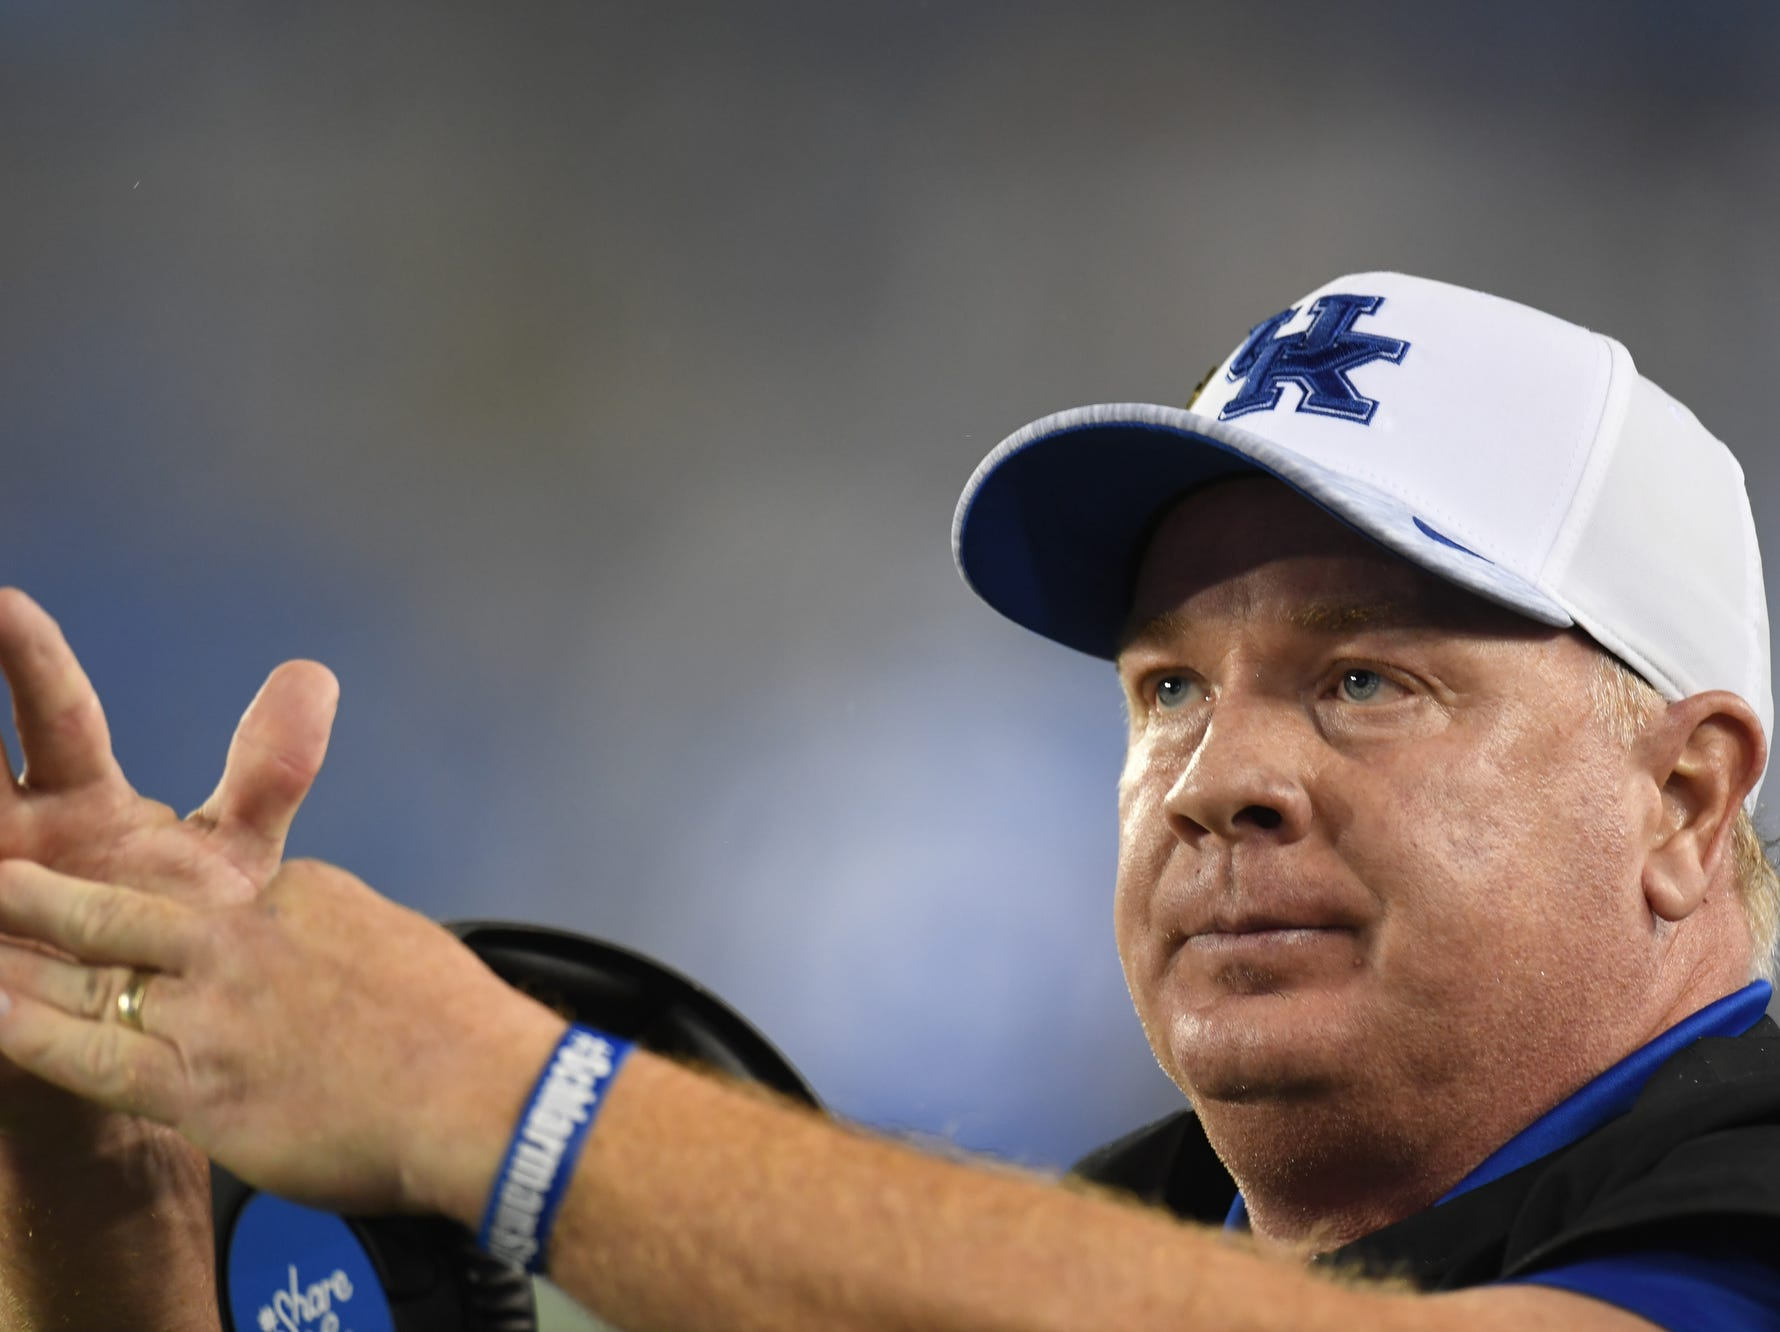 UK head coach Mark Stoops calls a timeout during the University of Kentucky football game against Mississippi State at Kroger Field in Lexington, Kentucky on Saturday, September 22, 2018.